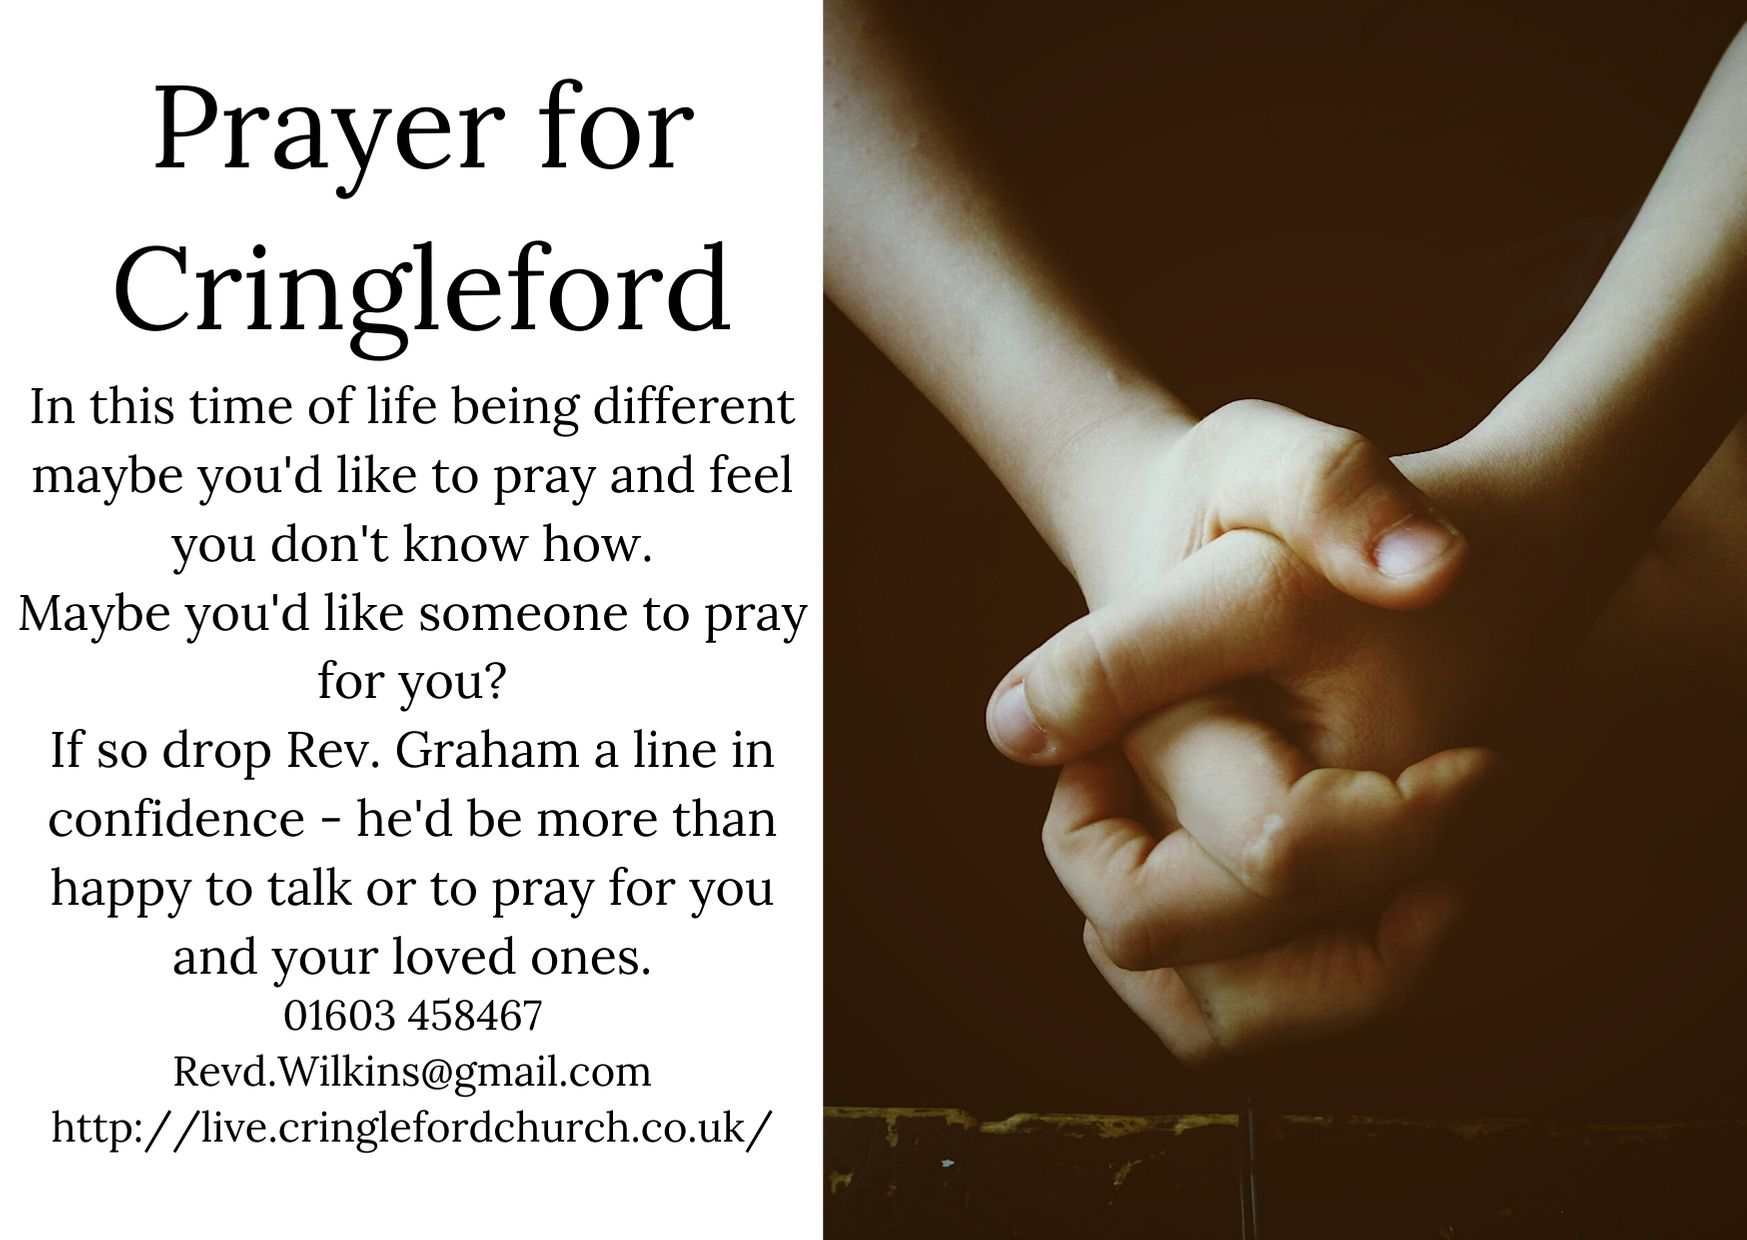 Prayer for Cringleford